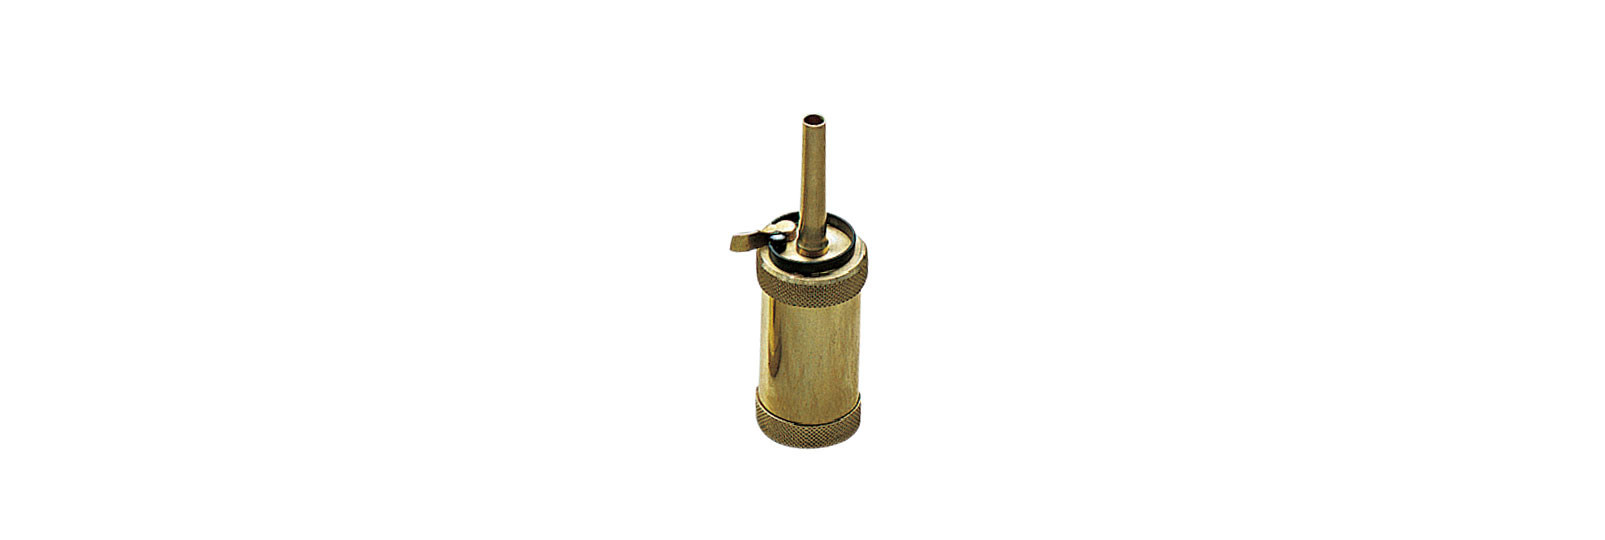 Tubolar short powder flask .44